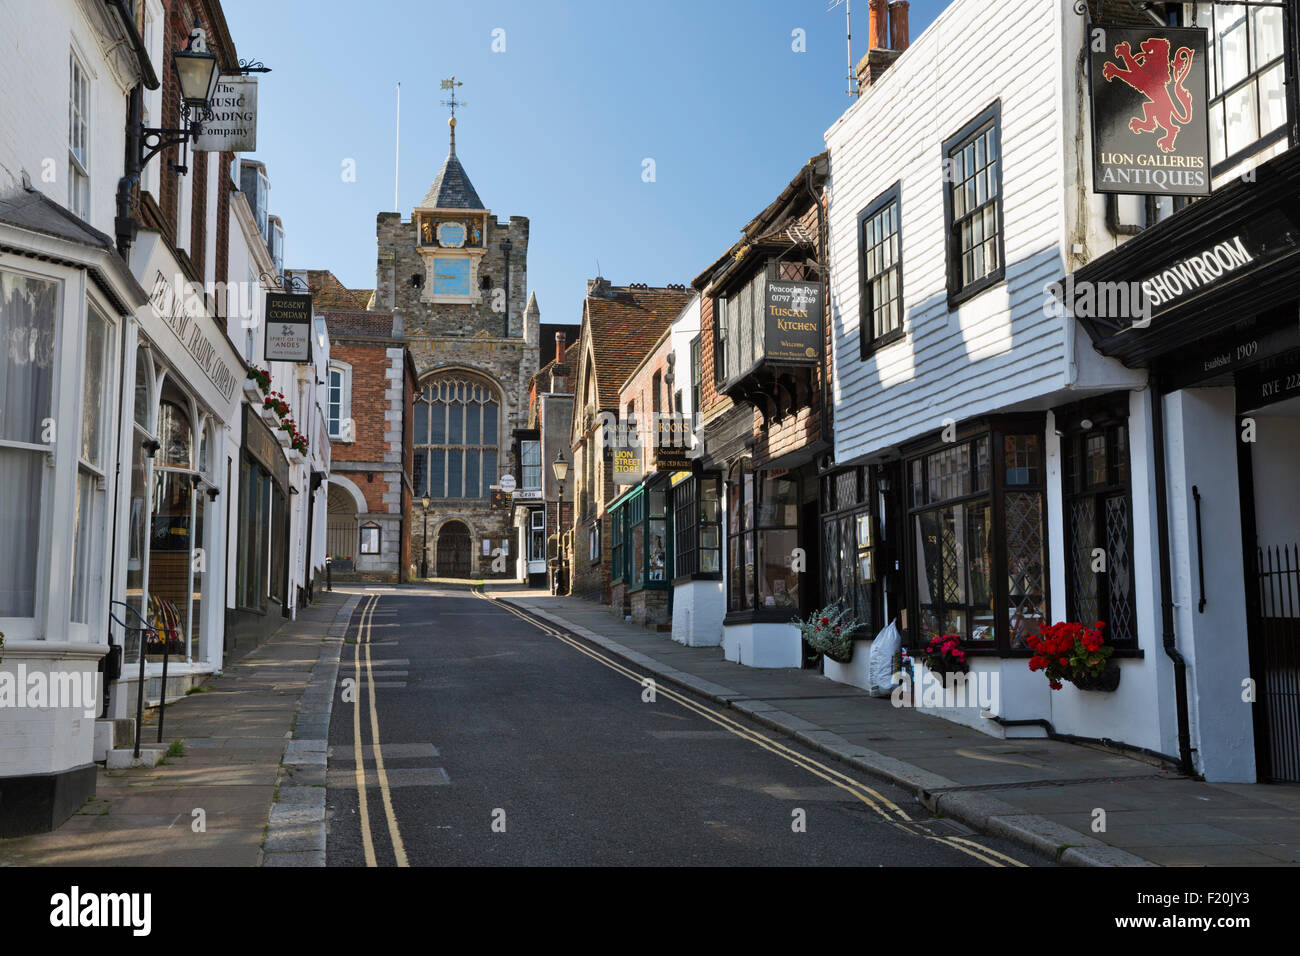 Lion Street and Saint Mary's Church, Rye, East Sussex, England, United Kingdom, Europe - Stock Image